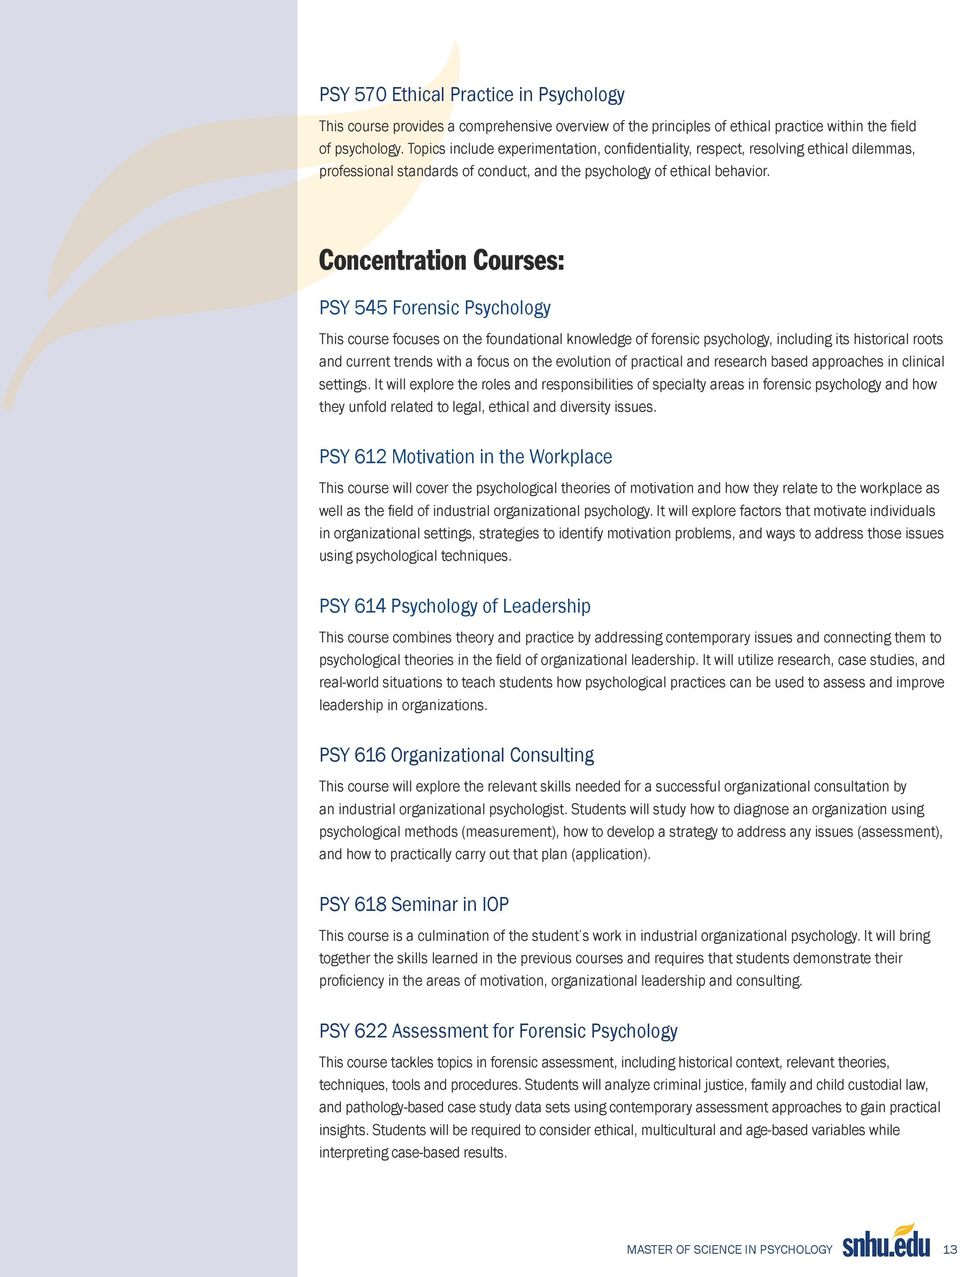 Concentration Courses: PSY 545 Forensic Psychology This course focuses on the foundational knowledge of forensic psychology, including its historical roots and current trends with a focus on the